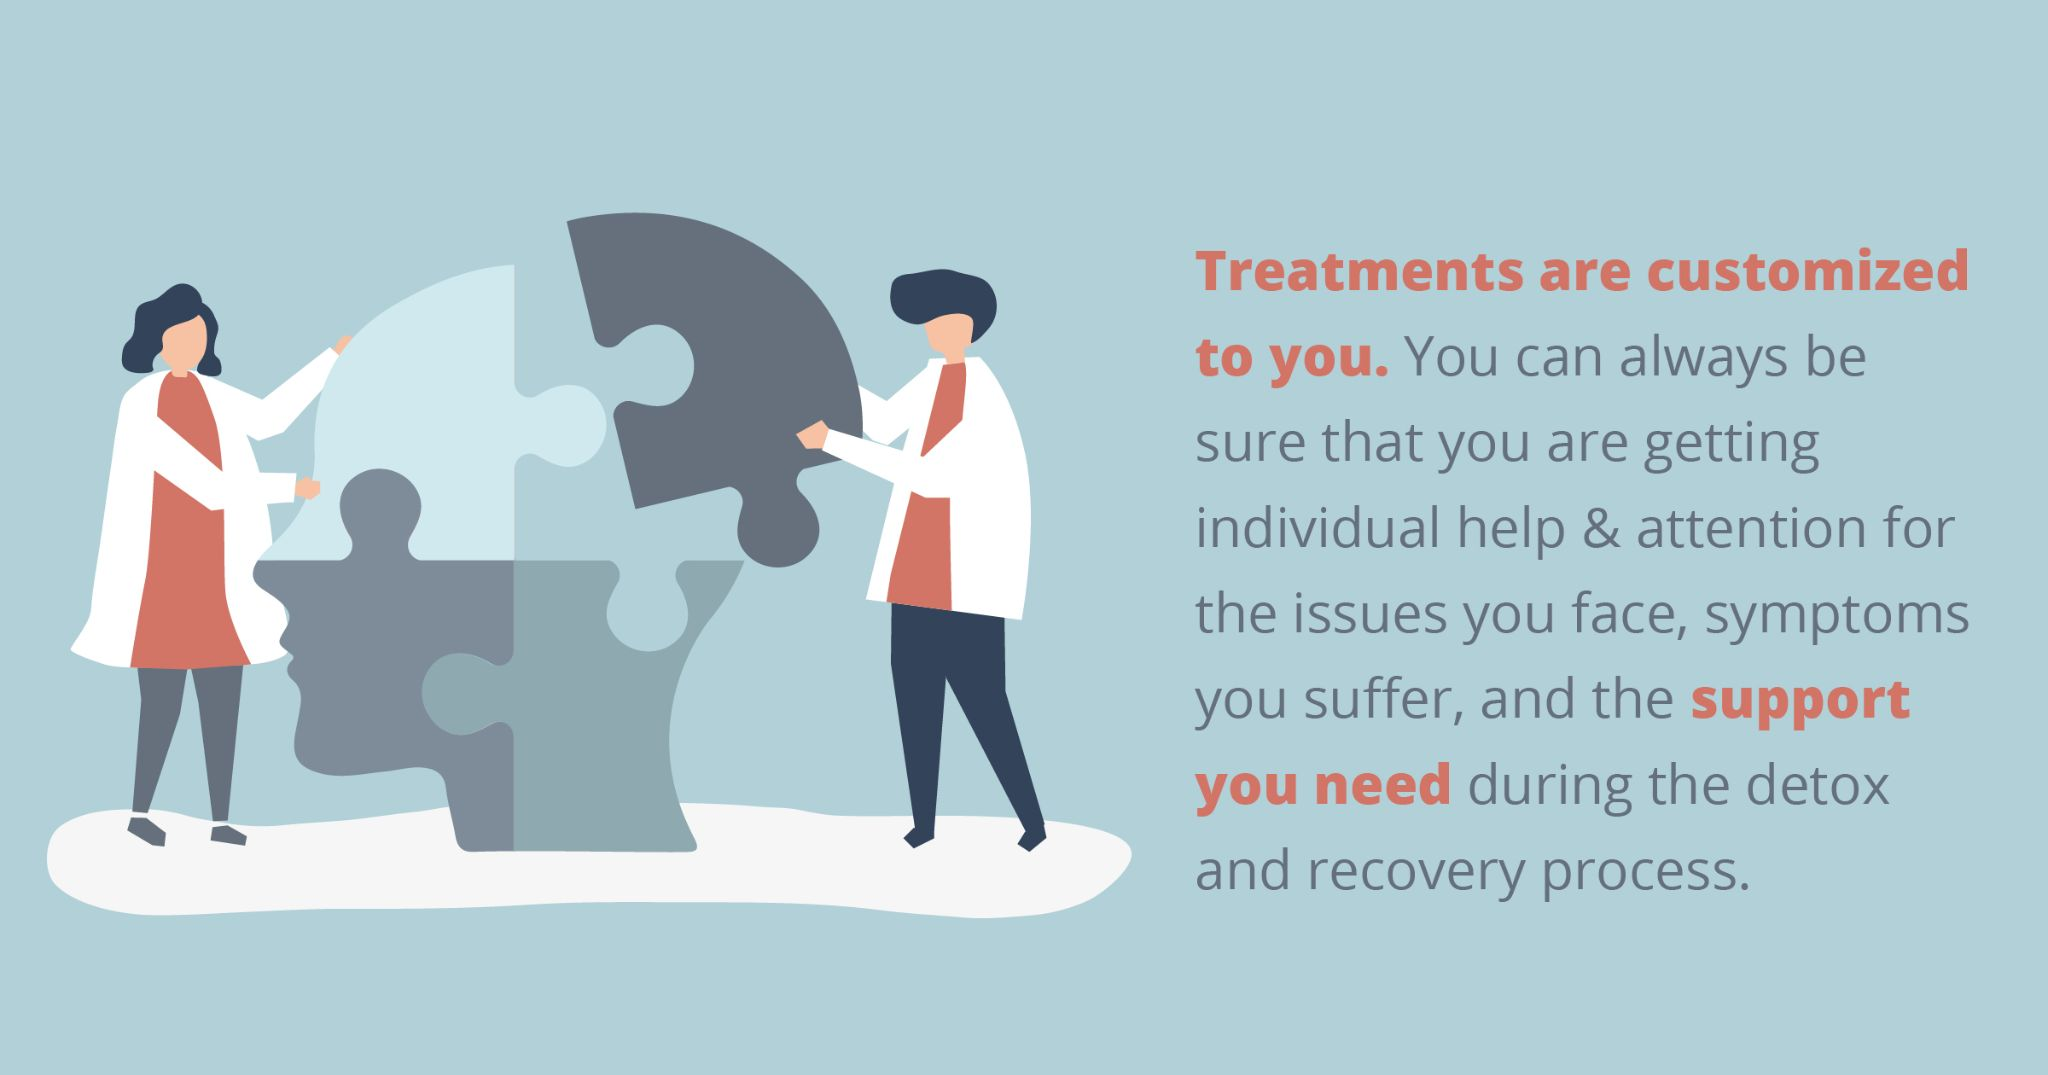 Treatments are customized to you. You can always be sure that you are getting individual help & attention for the issues you face, symptoms you suffer, and the support you need during the detox and recovery process.